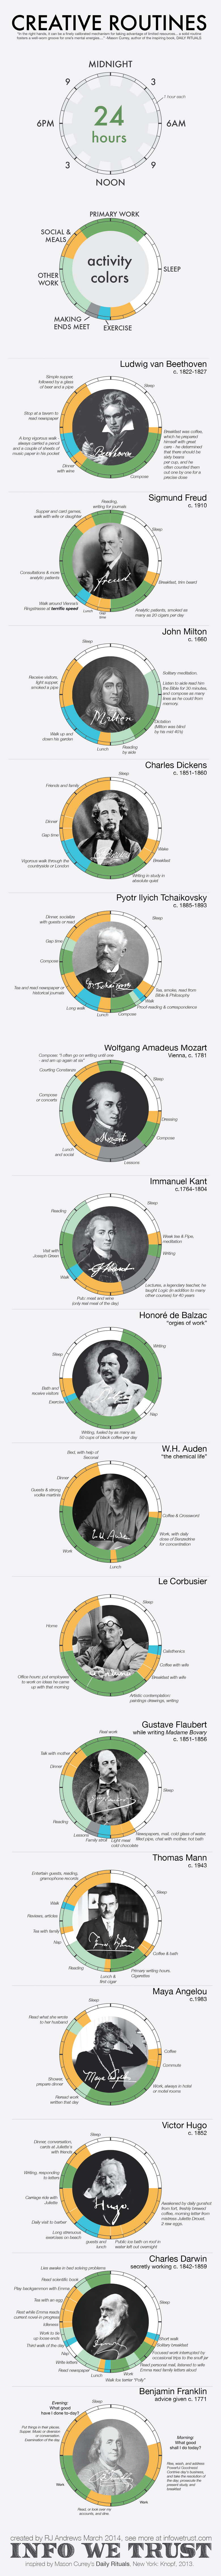 These Are The Daily Routines Of History's Most Famous Creative People (Infographic)